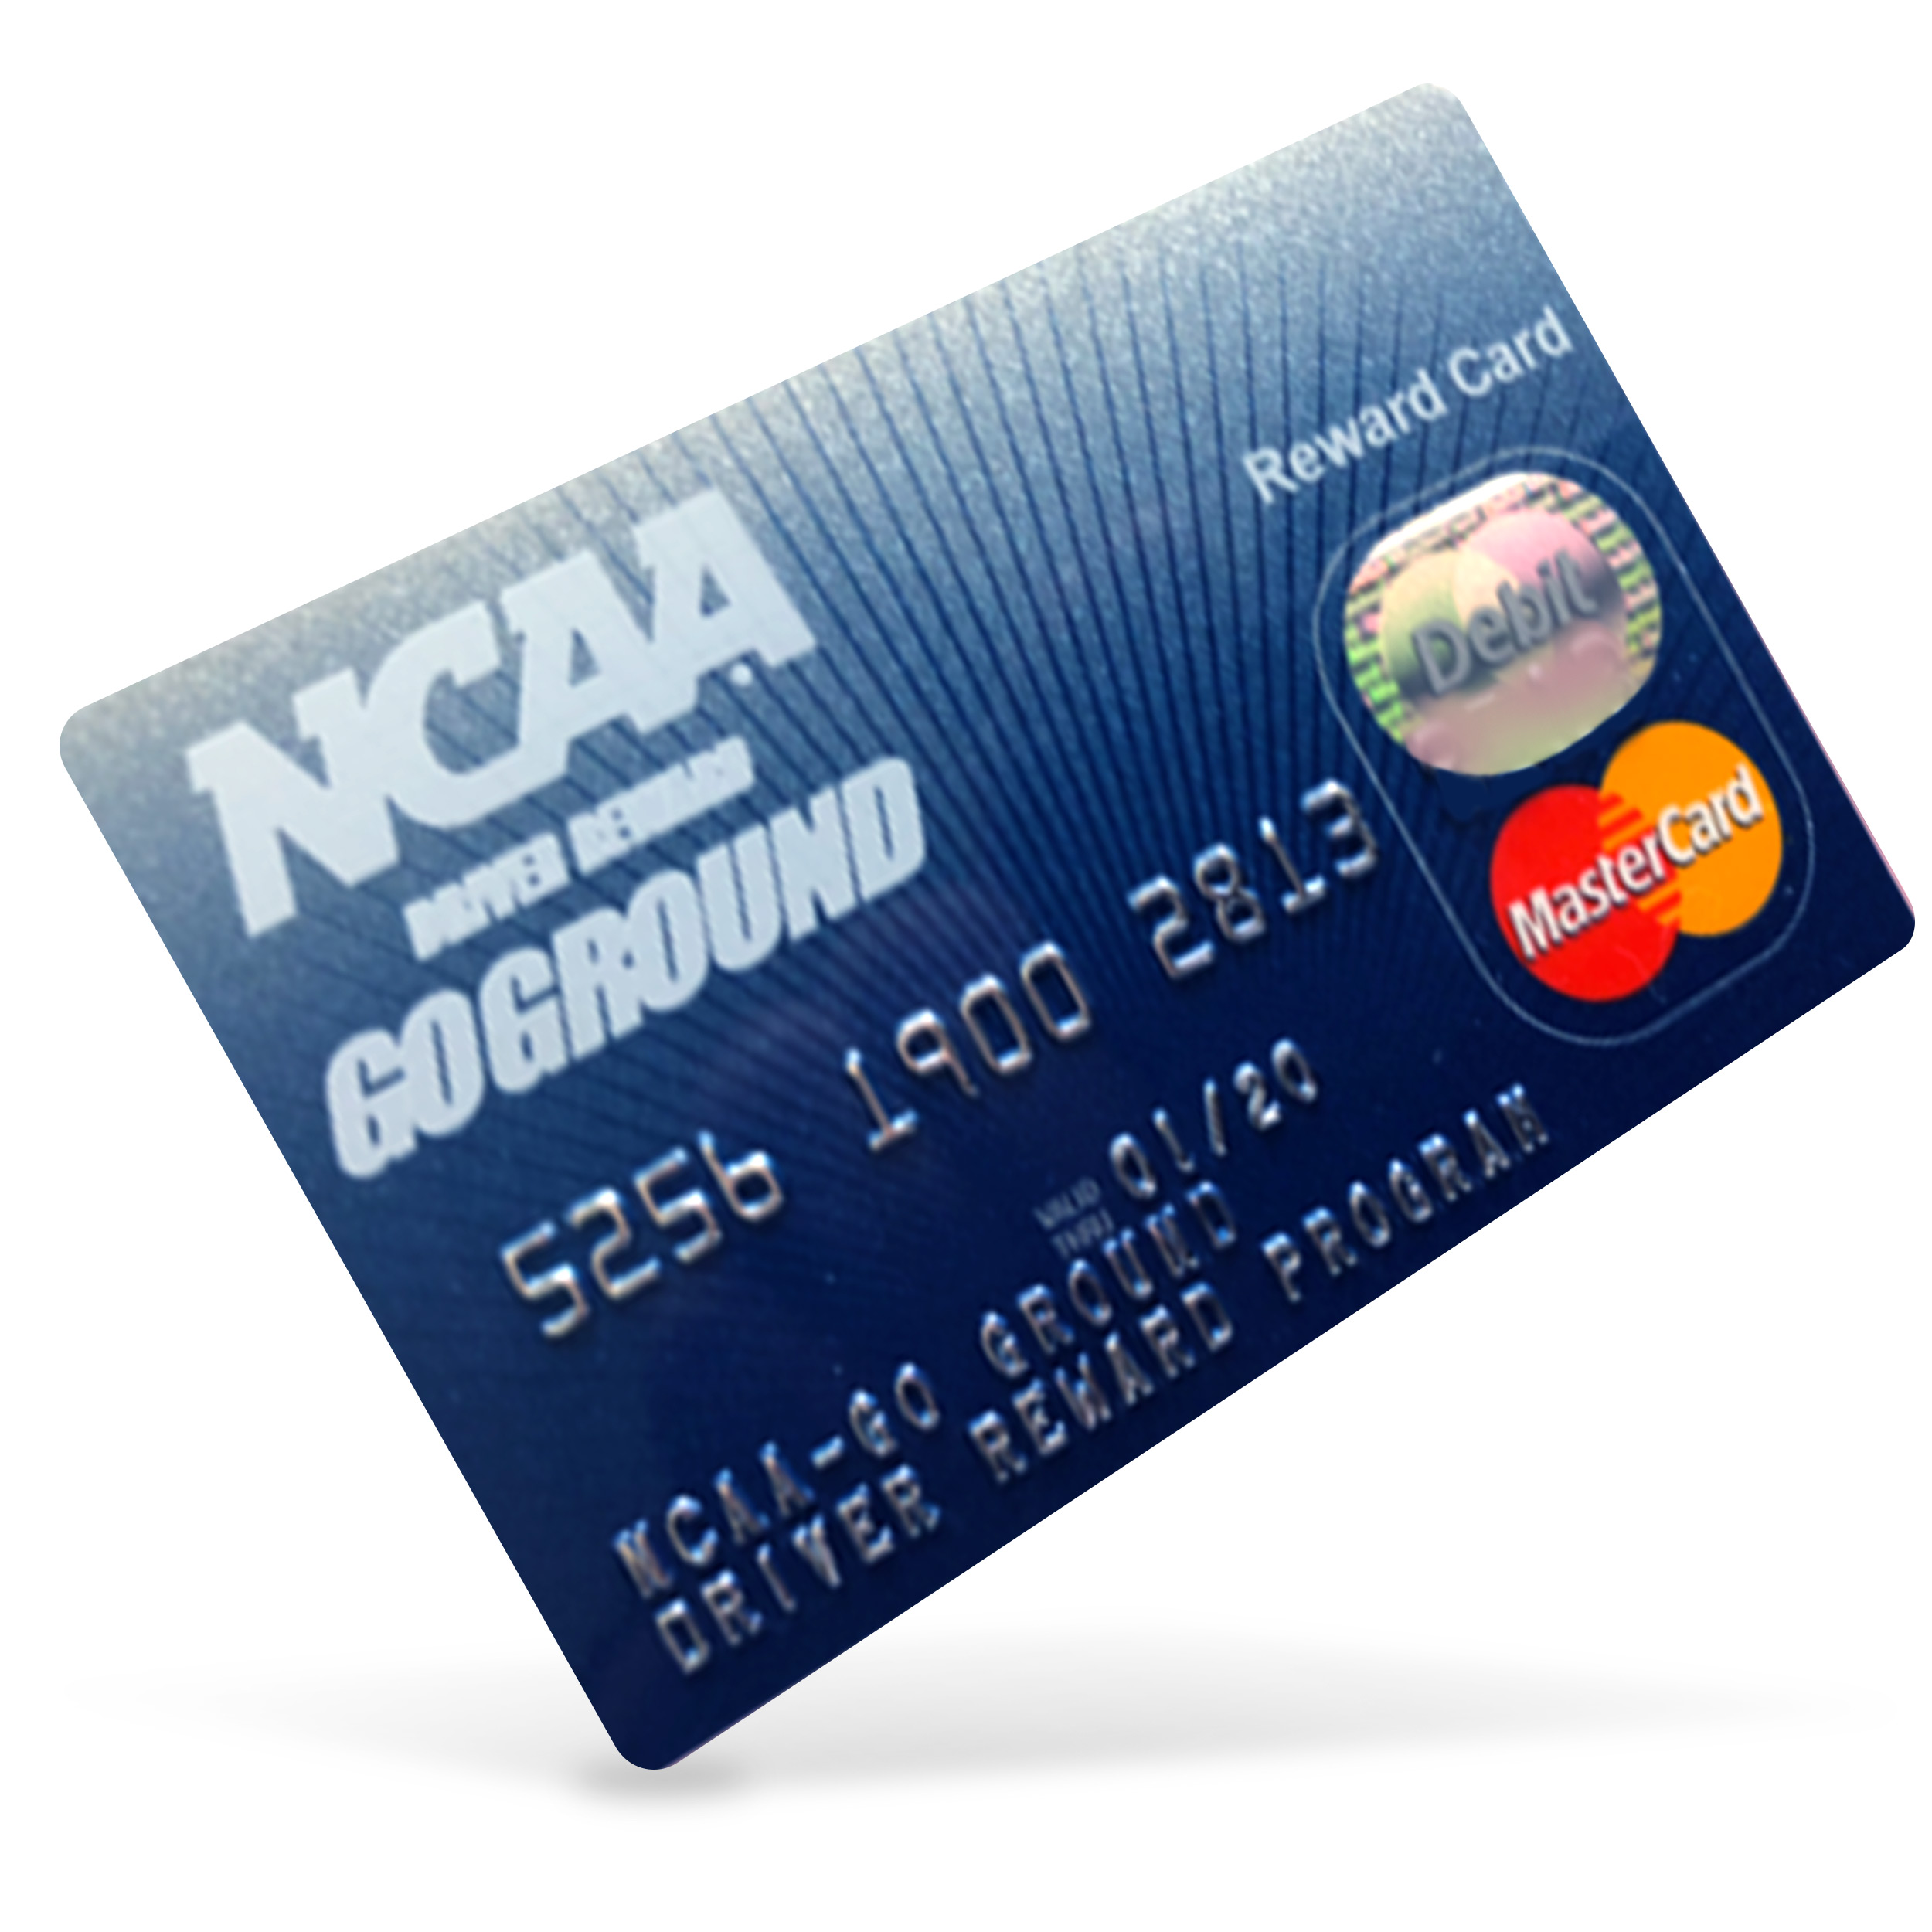 I love working with the GO GROUND team and being a part of the NCAA tournament. - - Joe S.